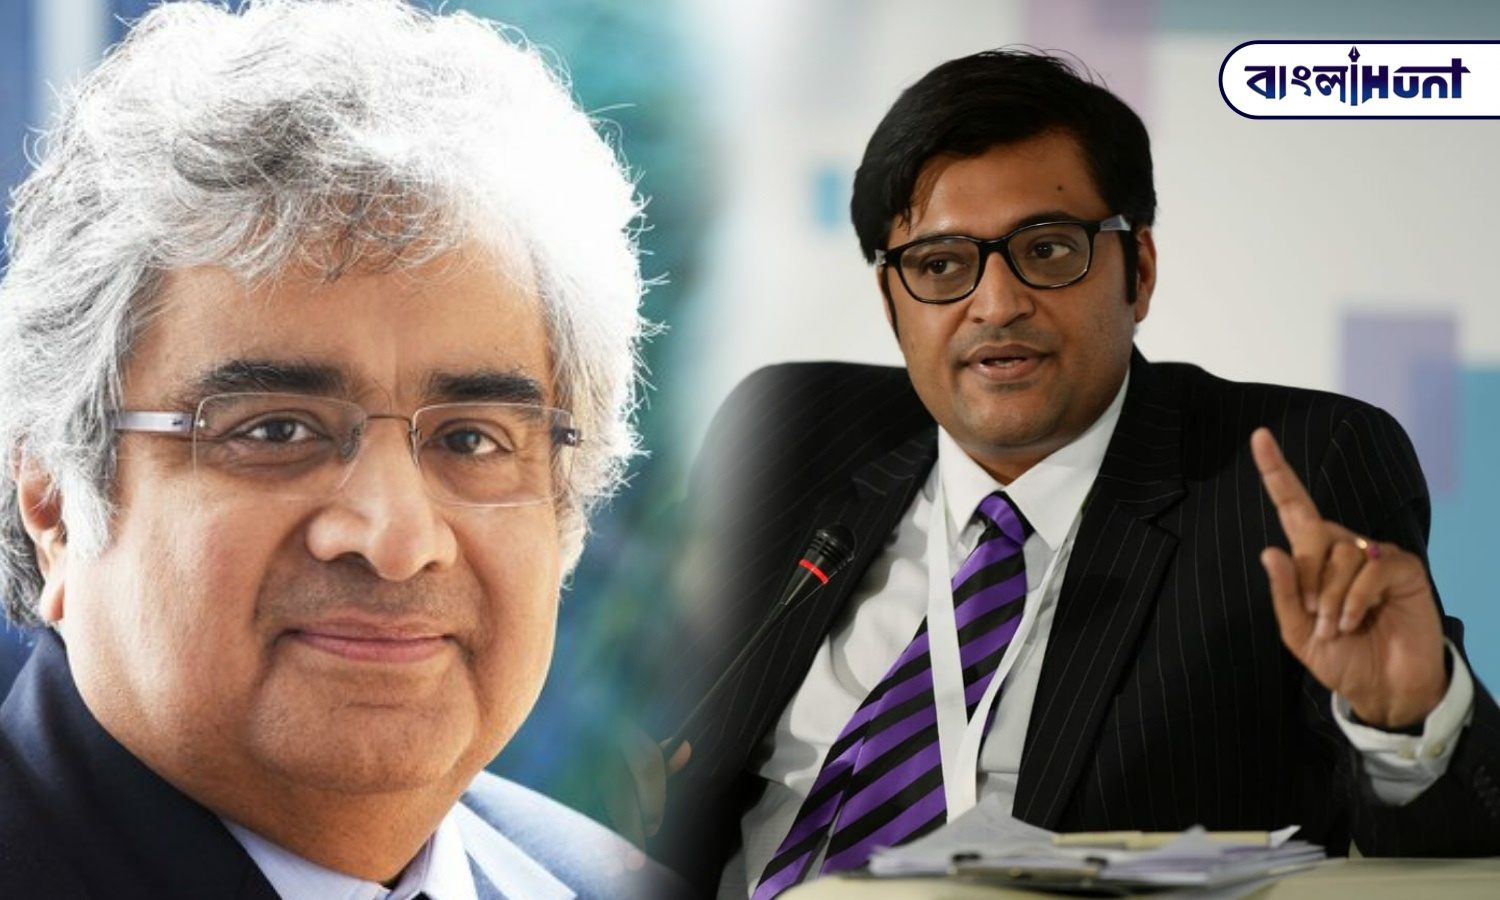 Lawyer Harish Salve did not take even 1 taka for my case, Arnab Goswami expressed gratitude on live show